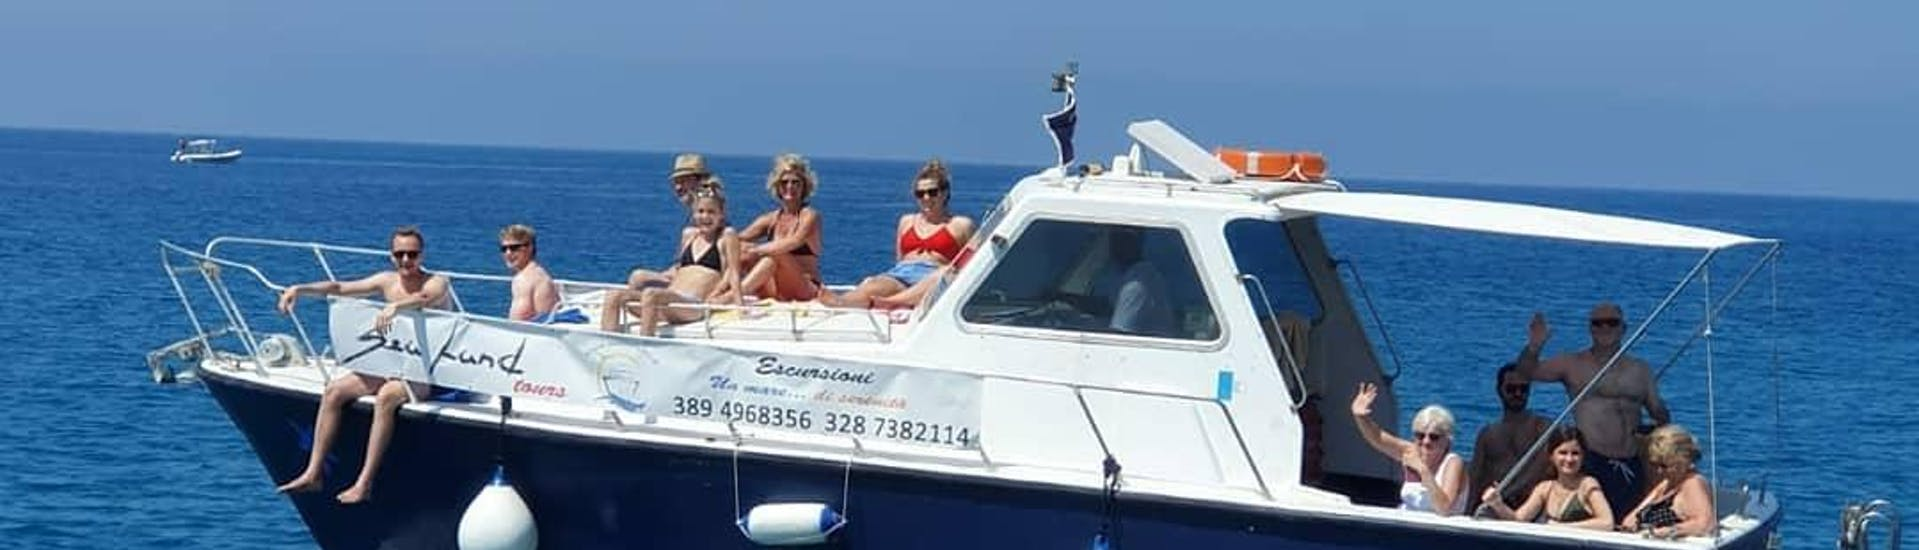 During a Sunset Boat Trip in Cefalù with Sightseeing with Sea Land Tours Cefalù passengers have fun sitting on the boat.